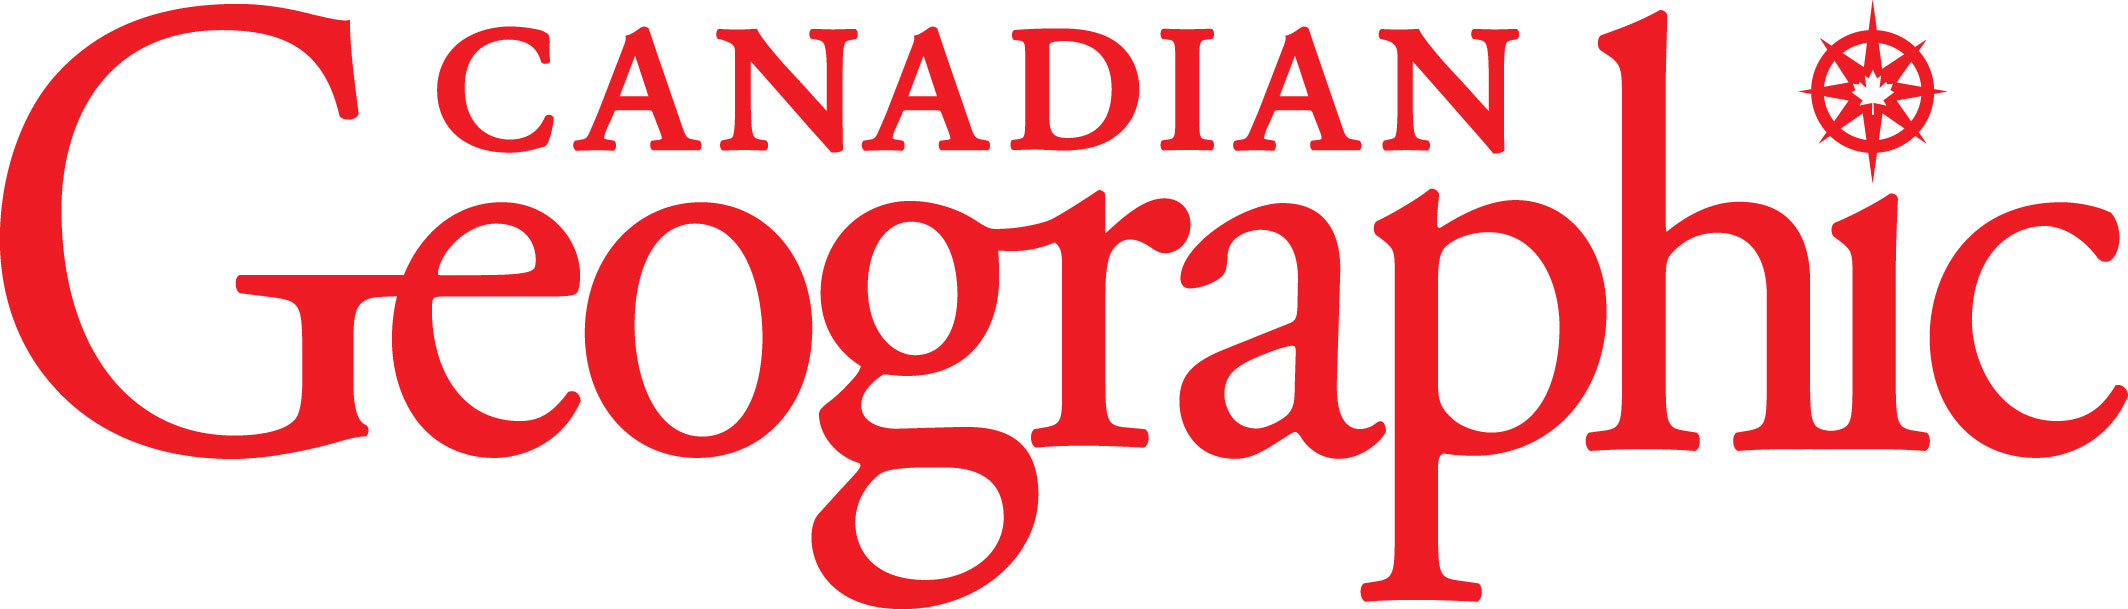 Image result for Canadian Geographic